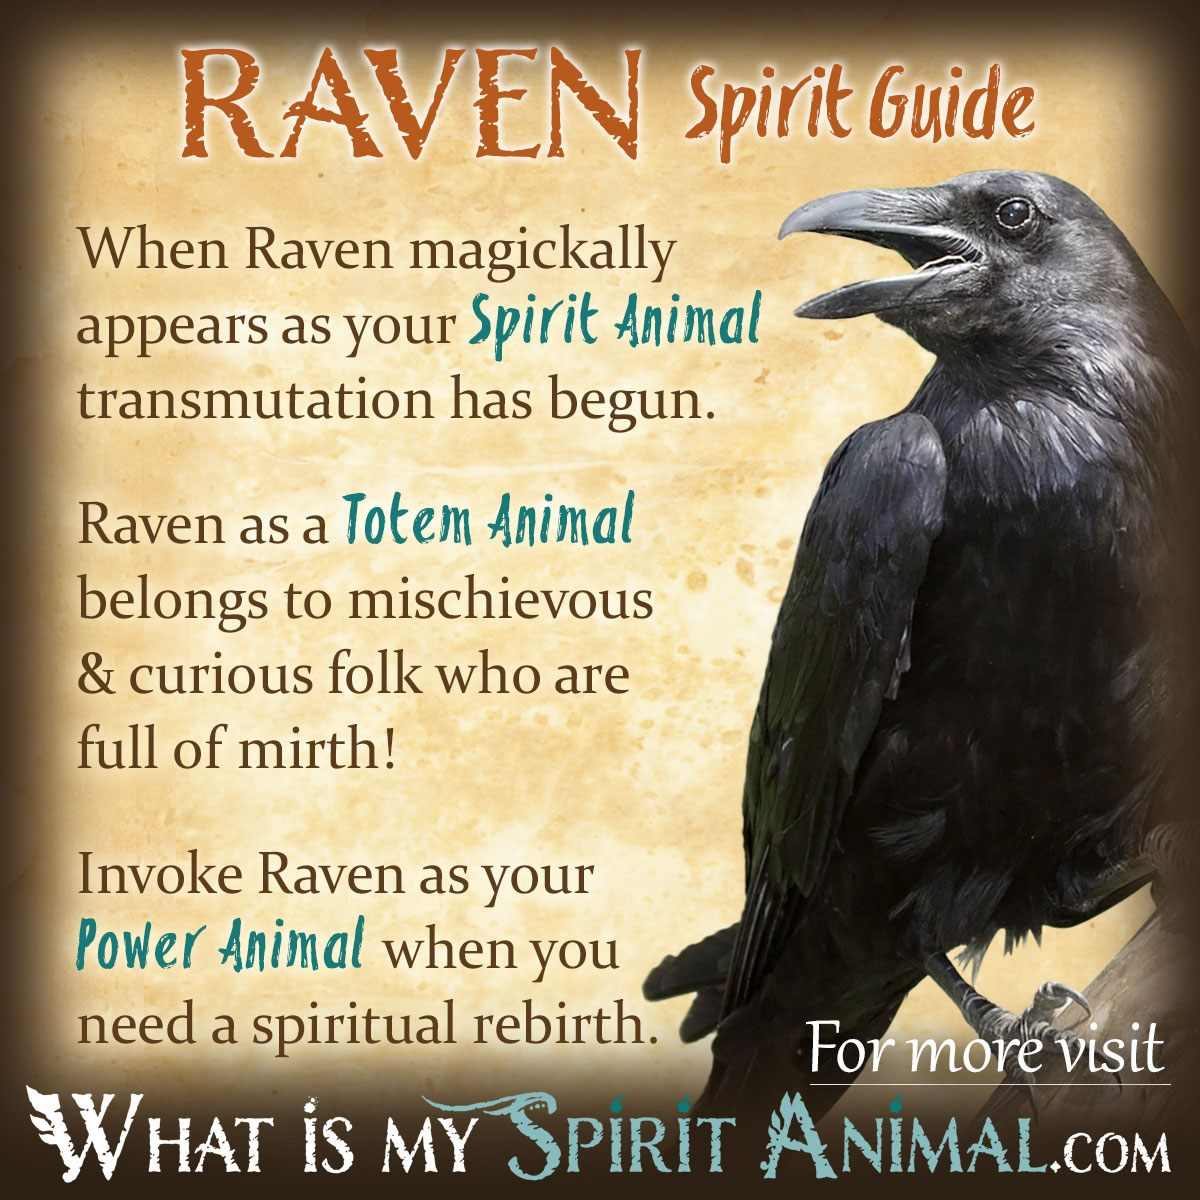 Drawn raven indian Totem Power Totem Spirit Meaning